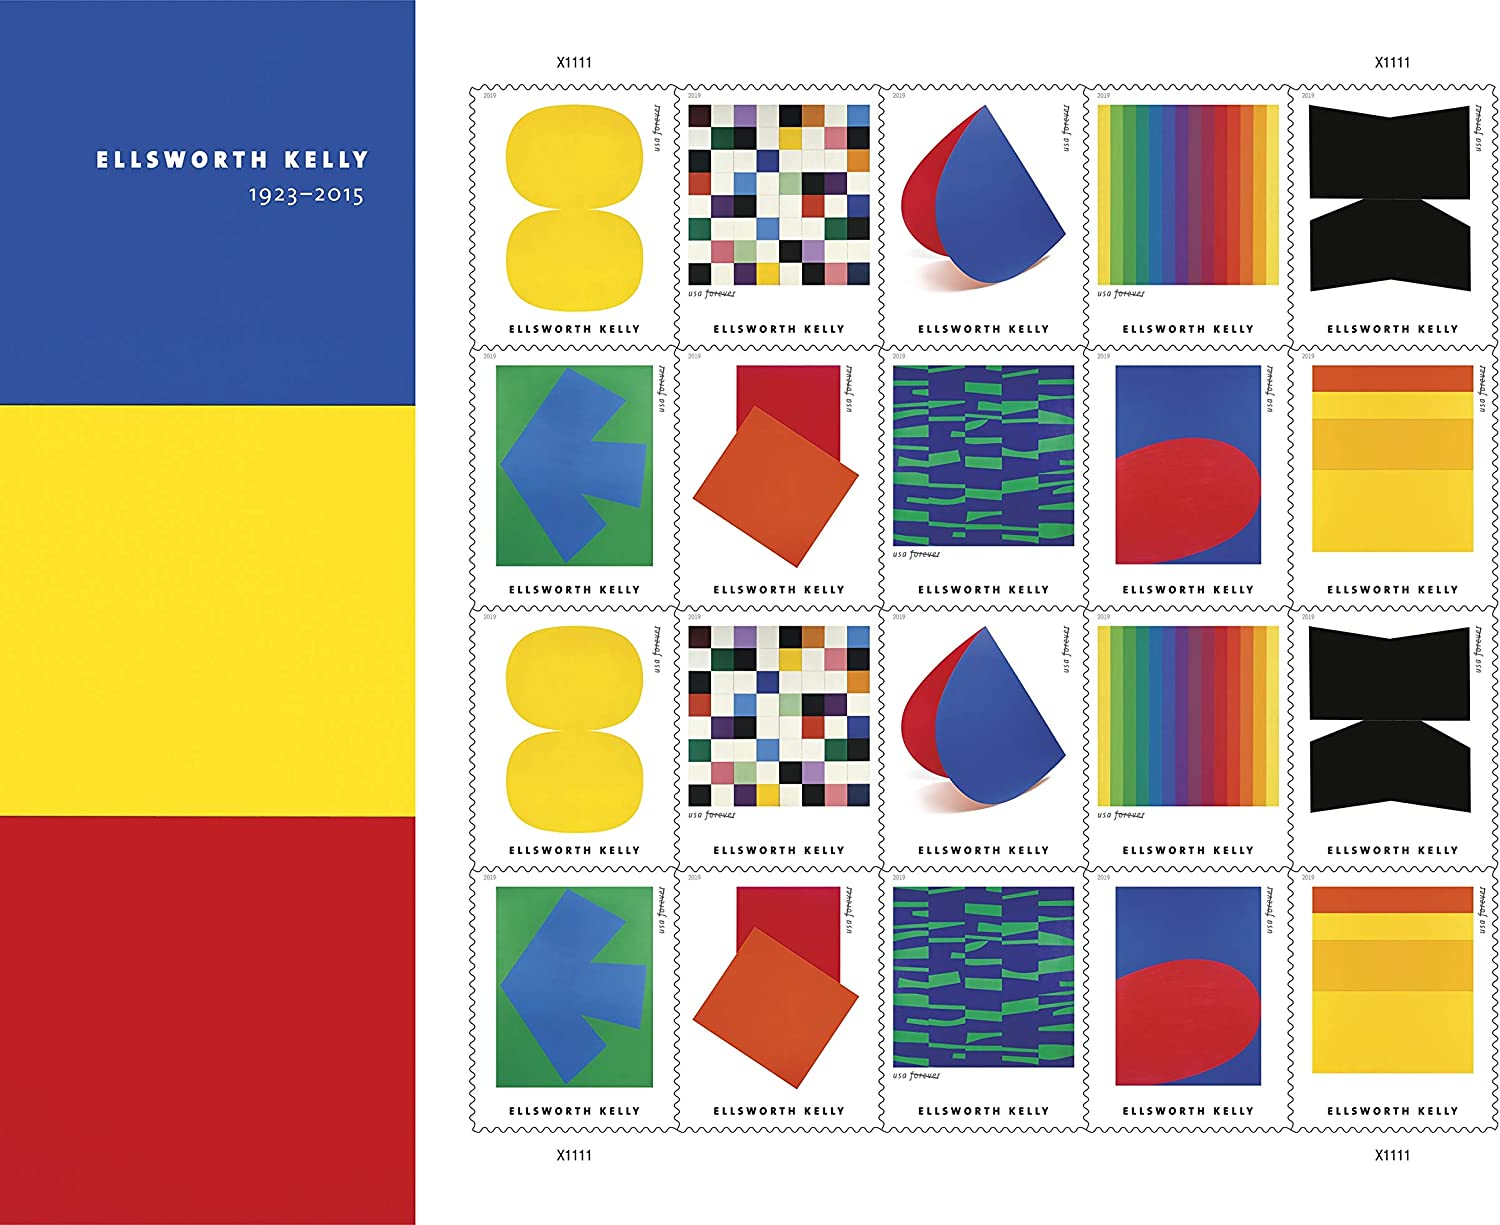 Ellsworth Kelly Artist Pane of 20 US First Class Forever Postage Stamps Scott 5391a (20 Stamps)